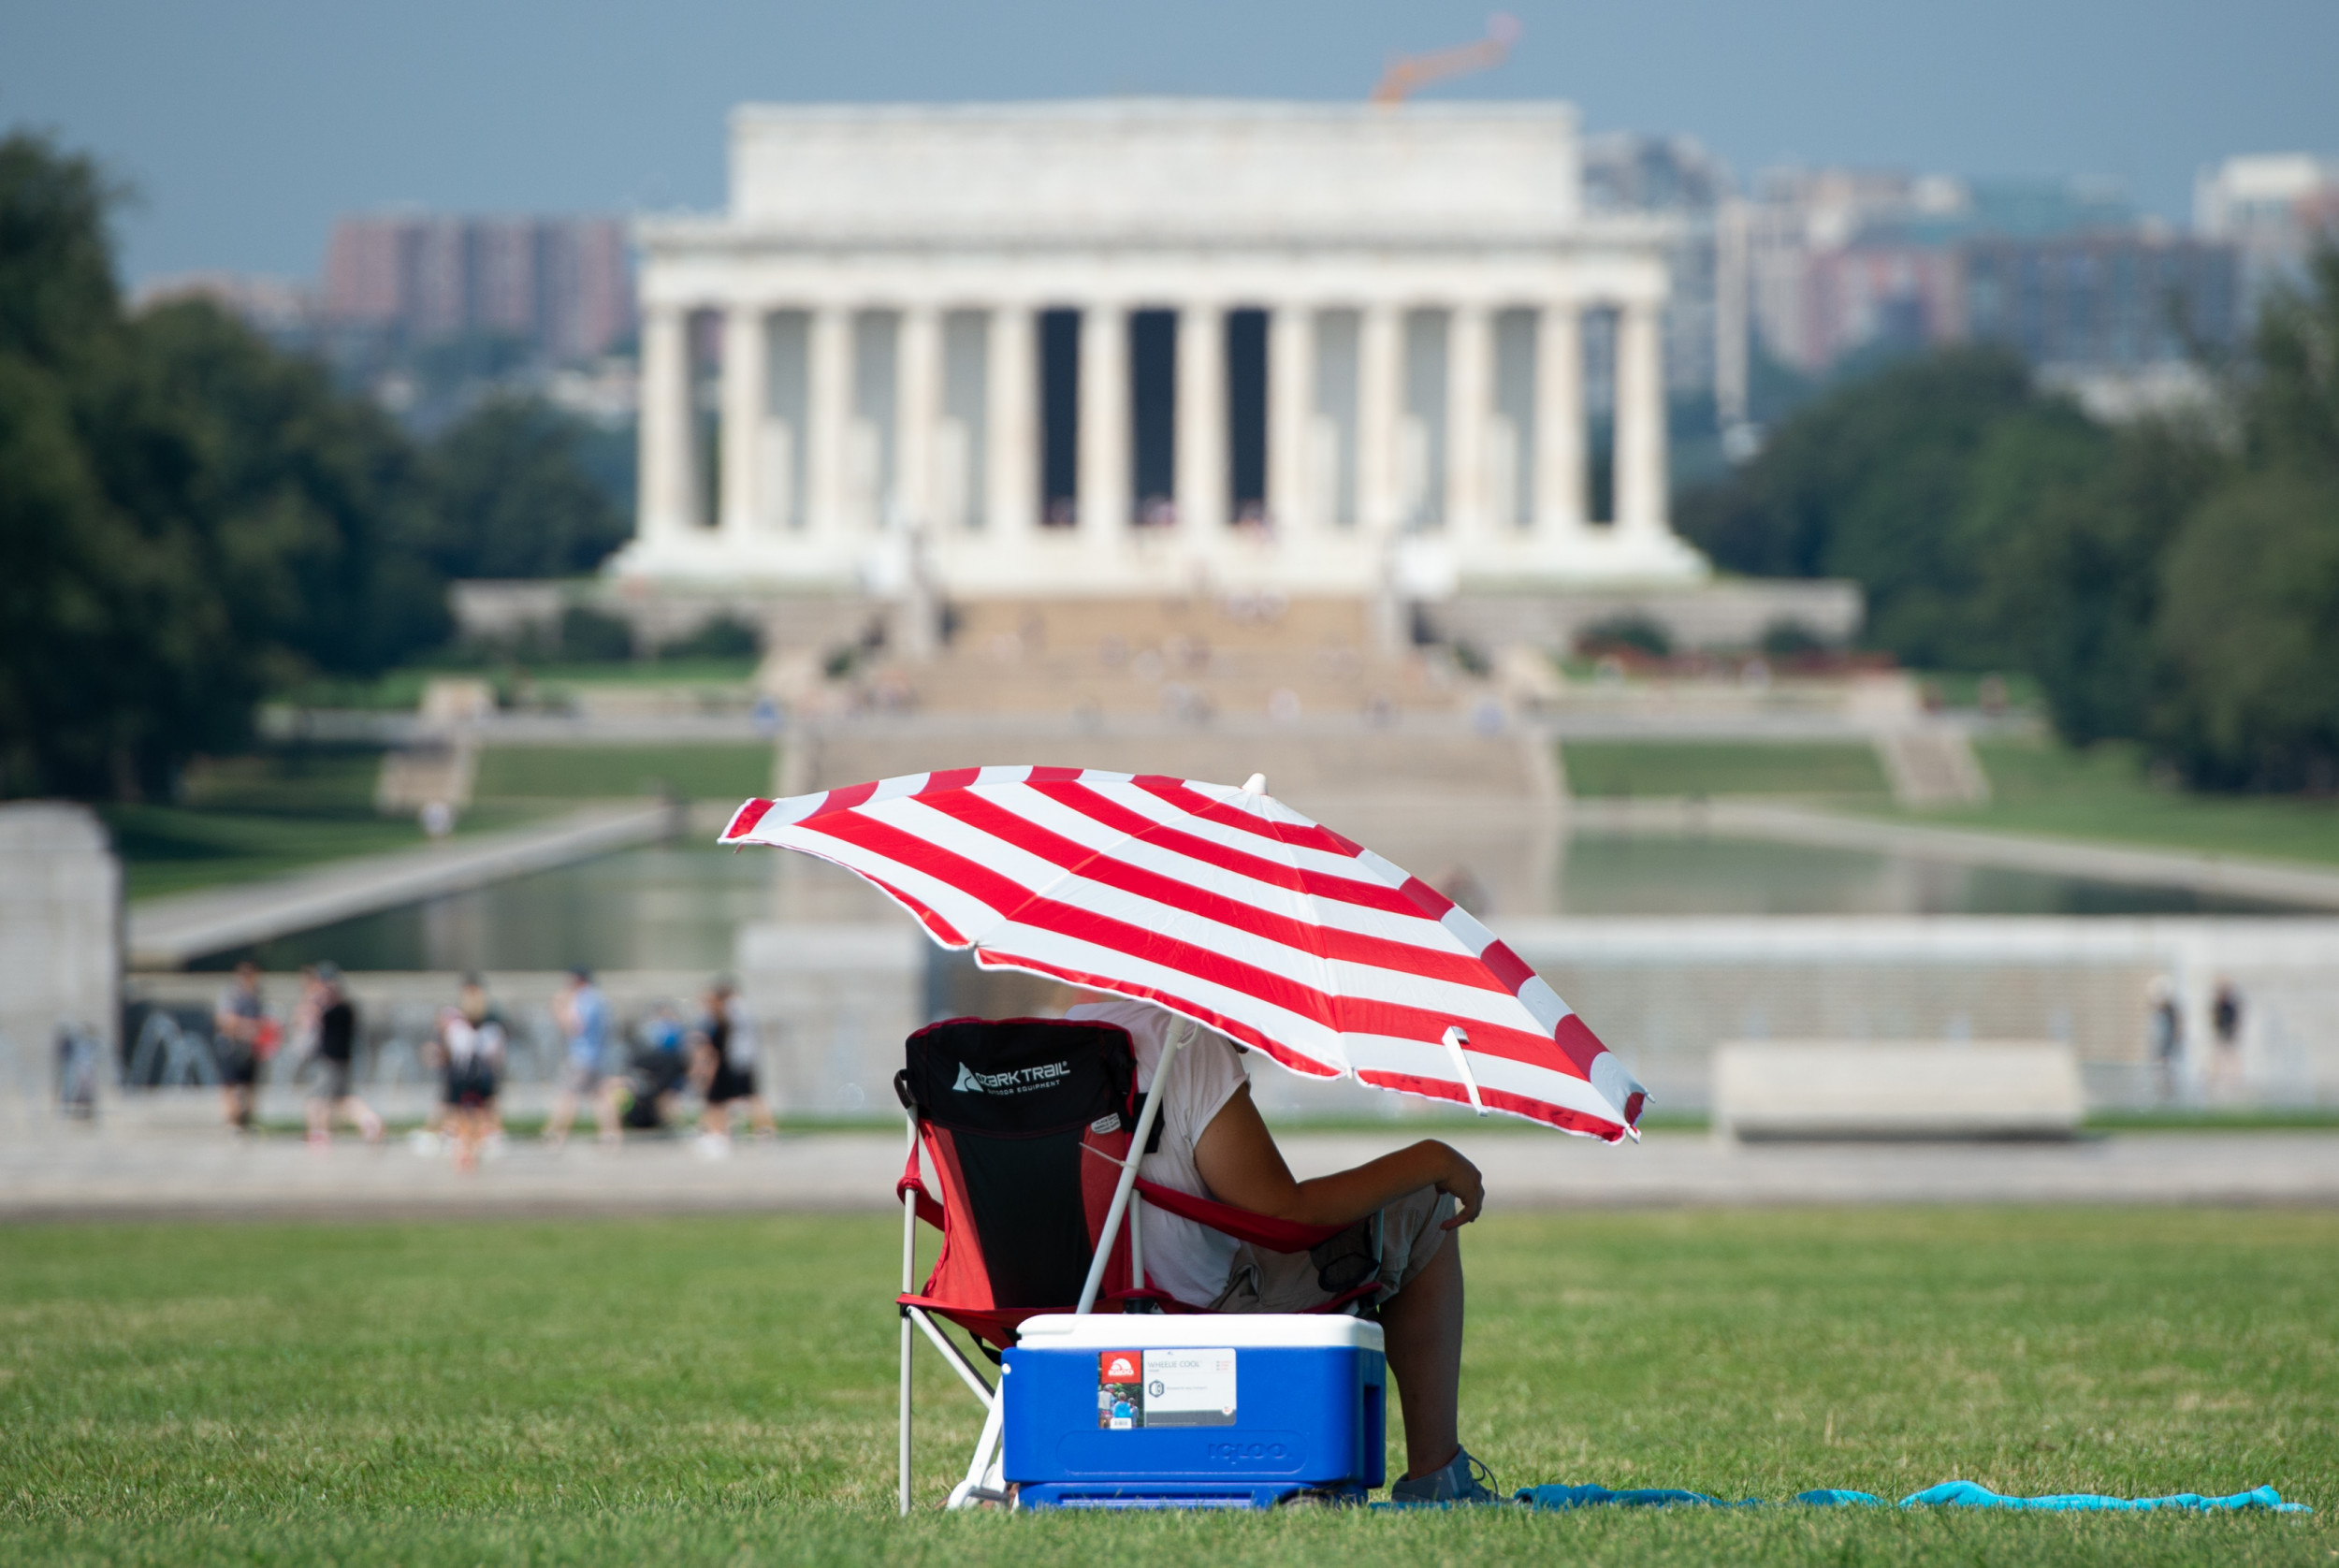 How hot will it get this weekend? Excessive heat temperatures expected across U.S.